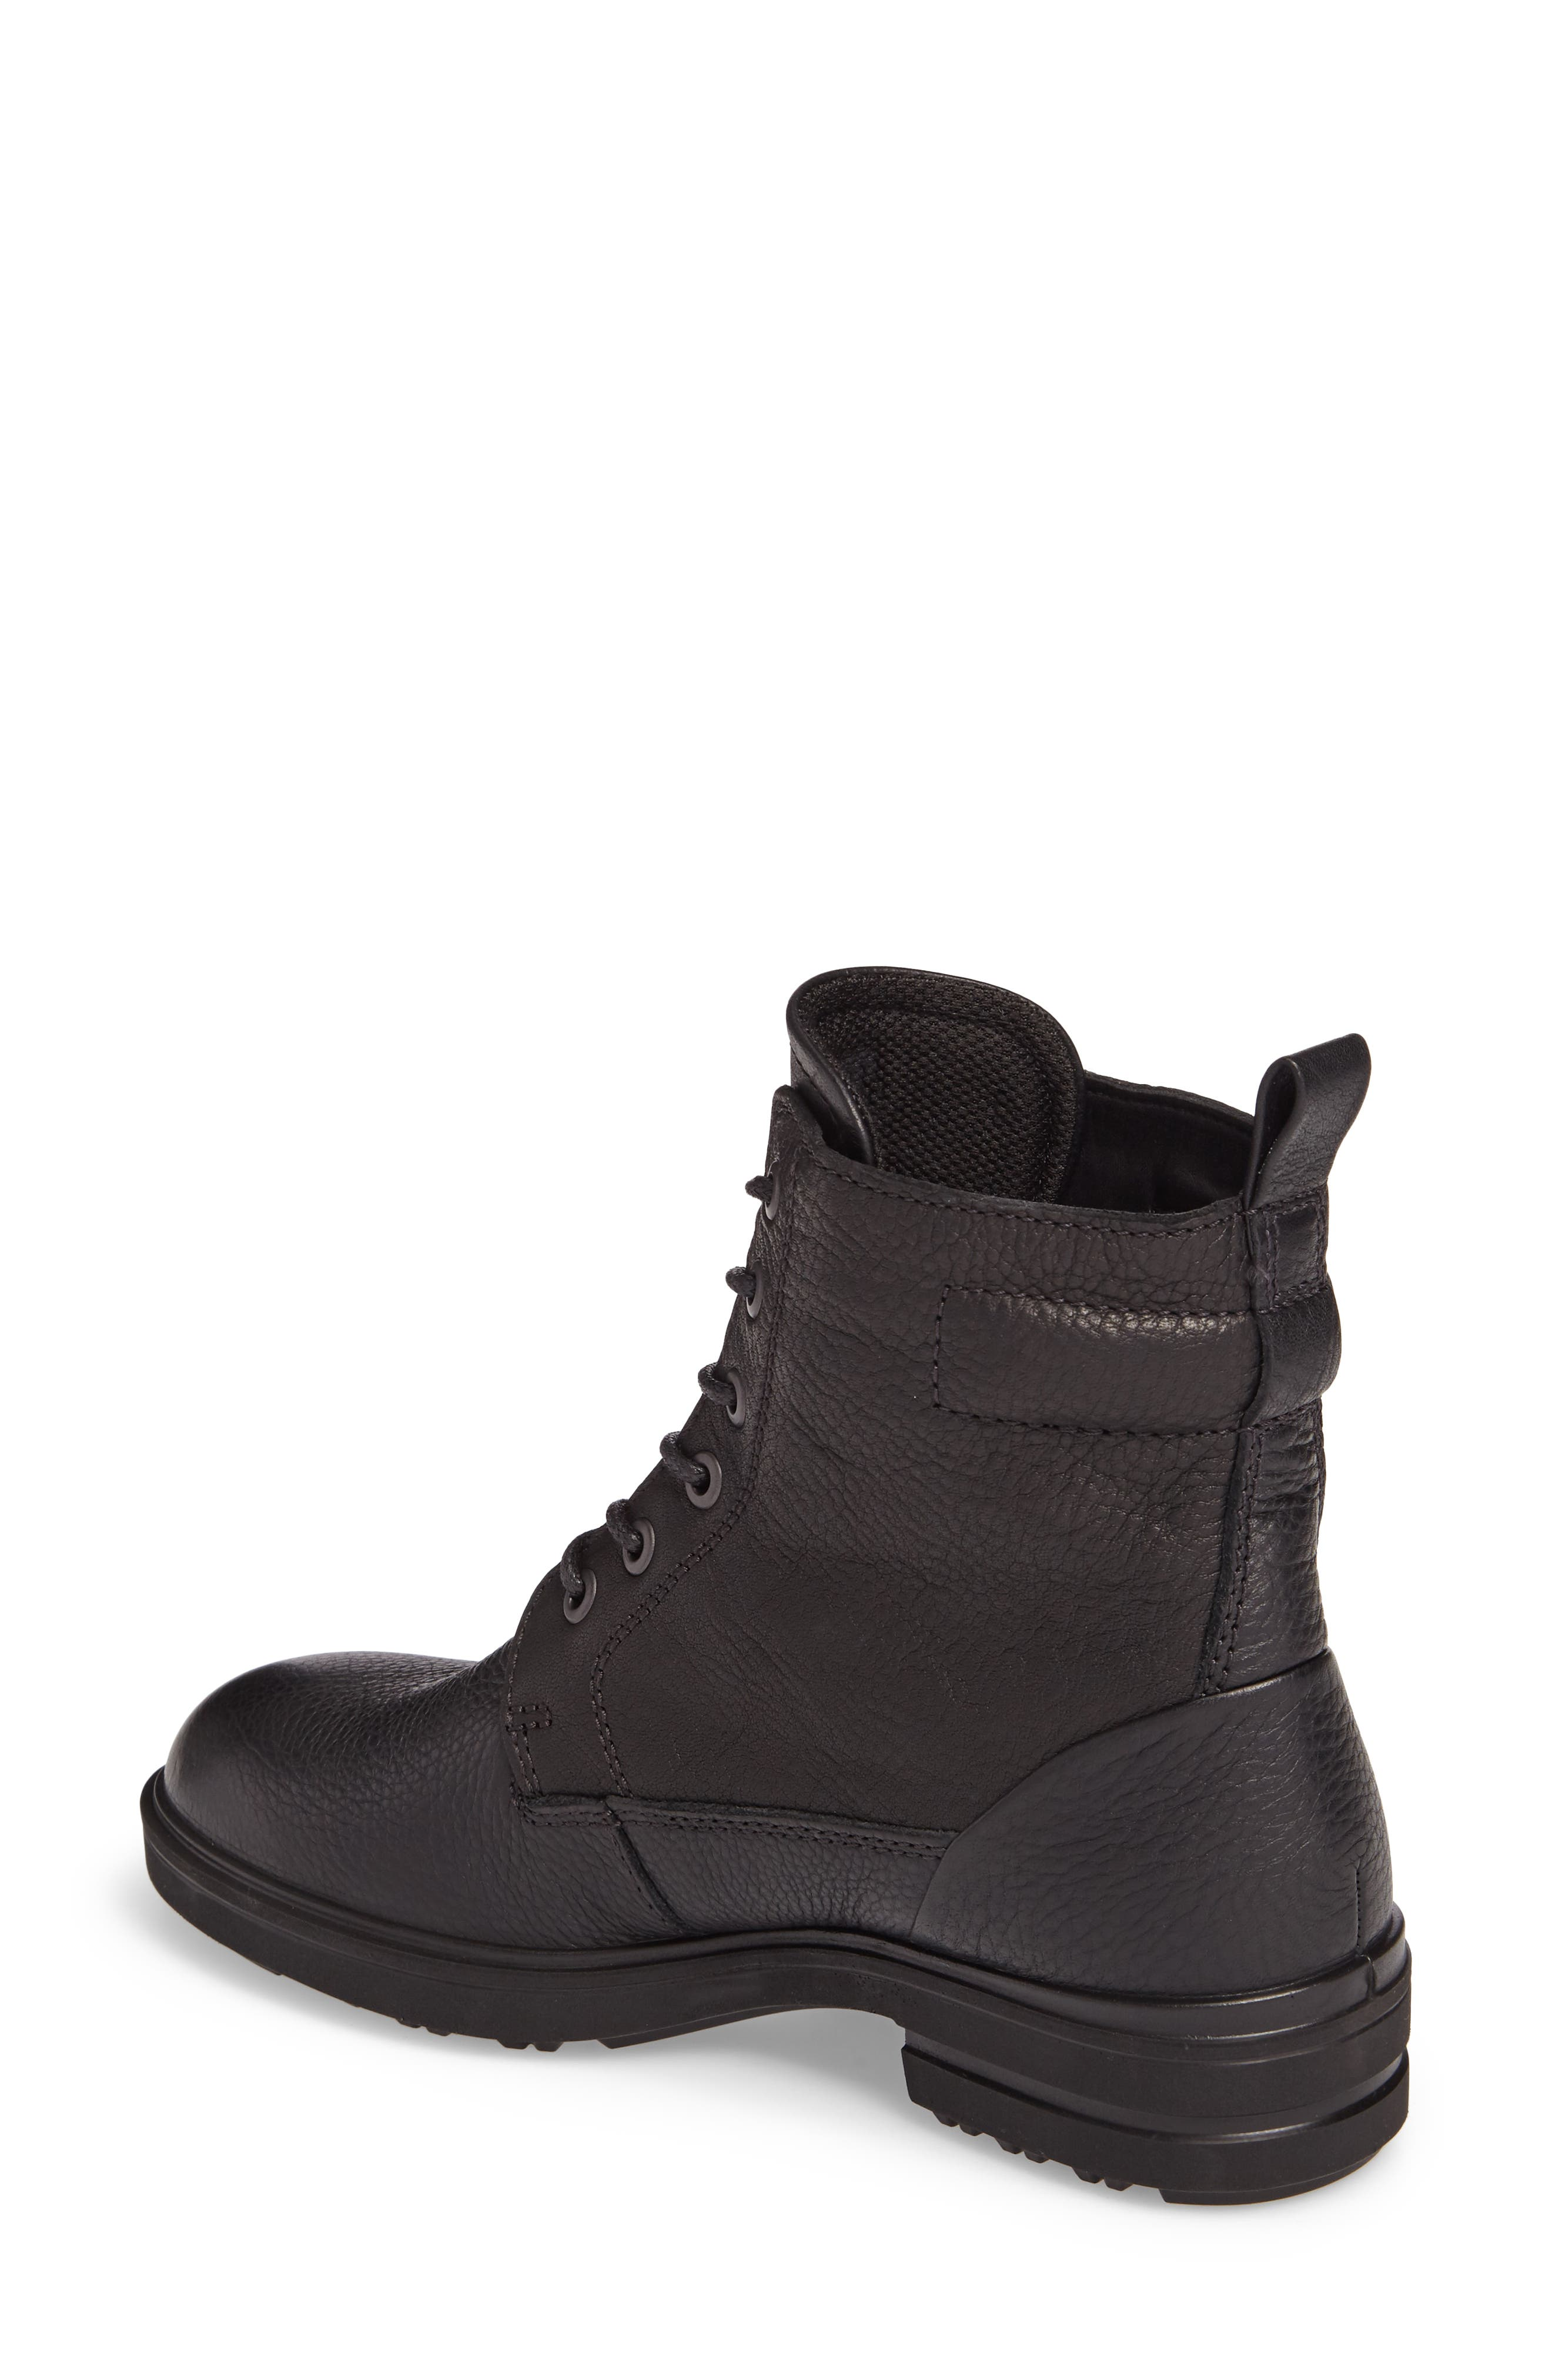 Zoe Lace-Up Boot,                             Alternate thumbnail 2, color,                             001